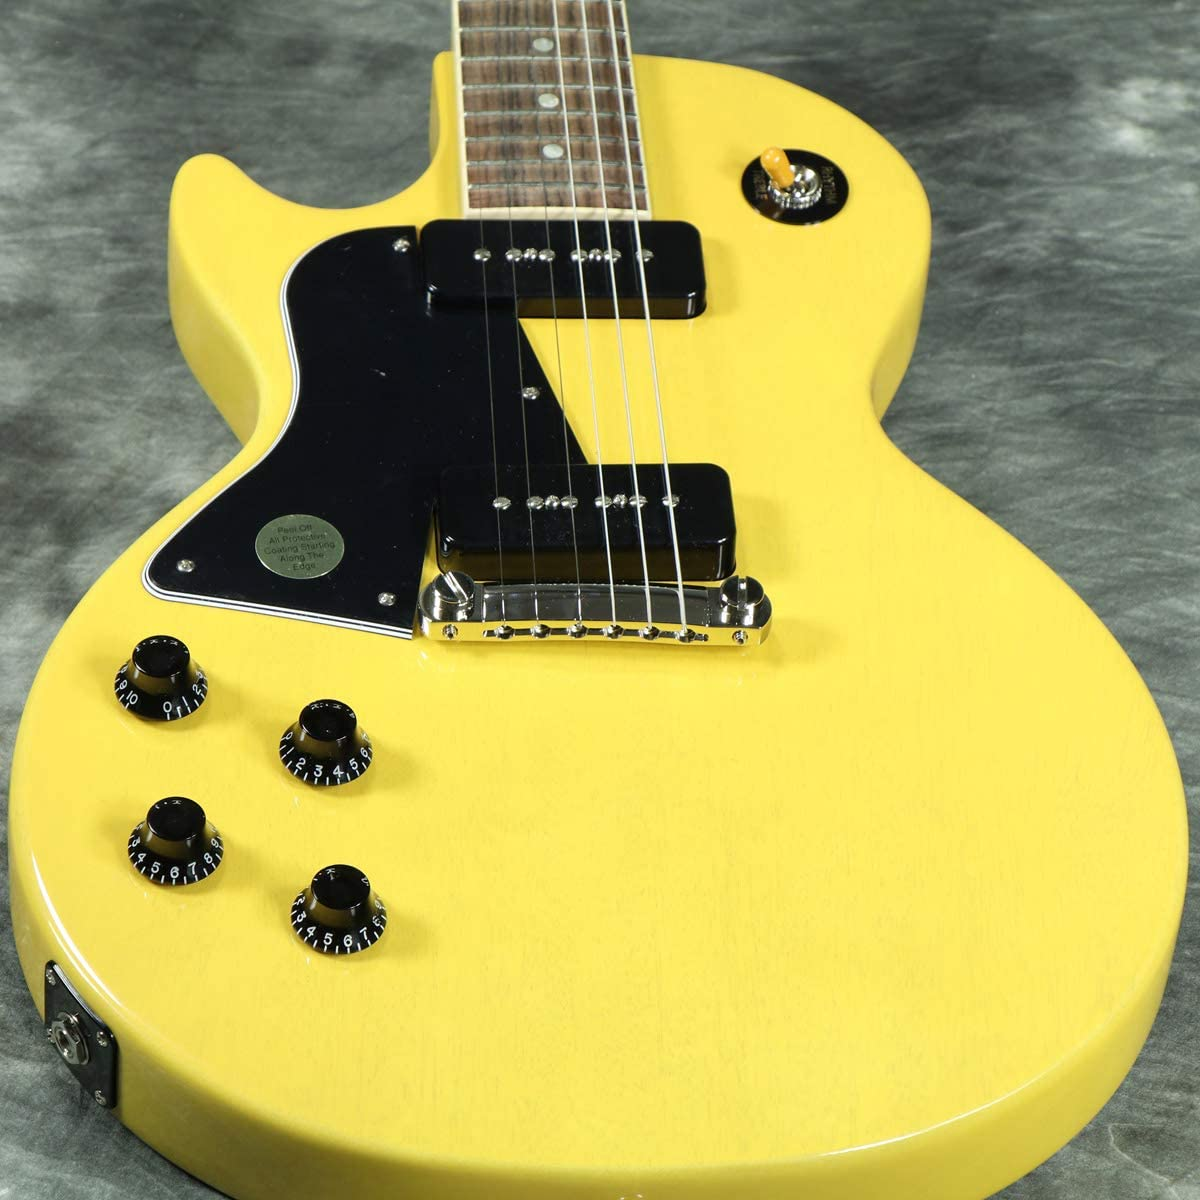 Gibson USA/Les Paul Special TV Yellow LH ギブソンUSA